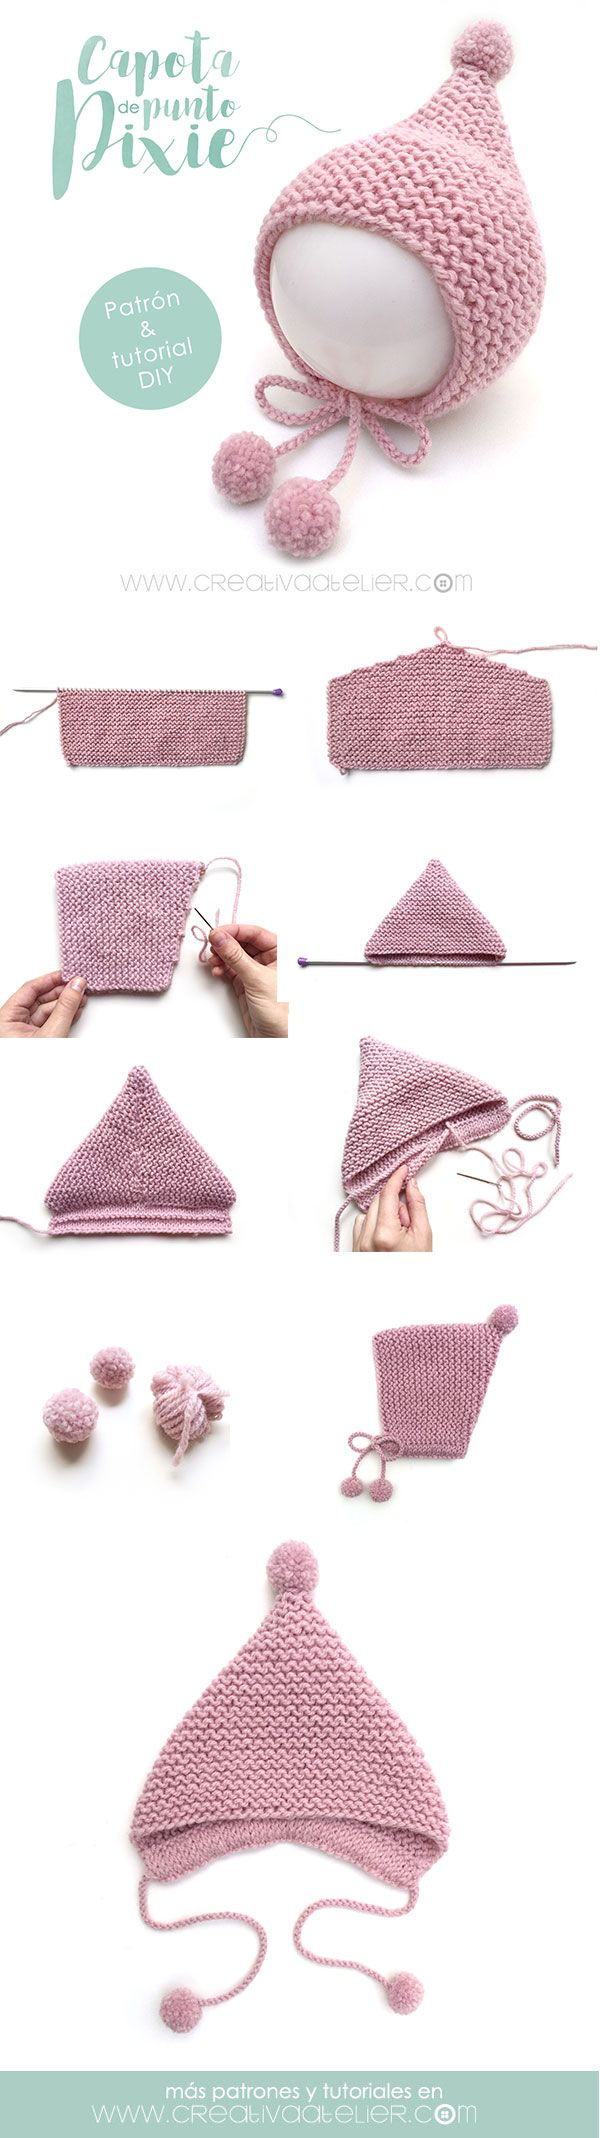 892 best Gorros images on Pinterest | Crocheting, Sombreros and Tejidos